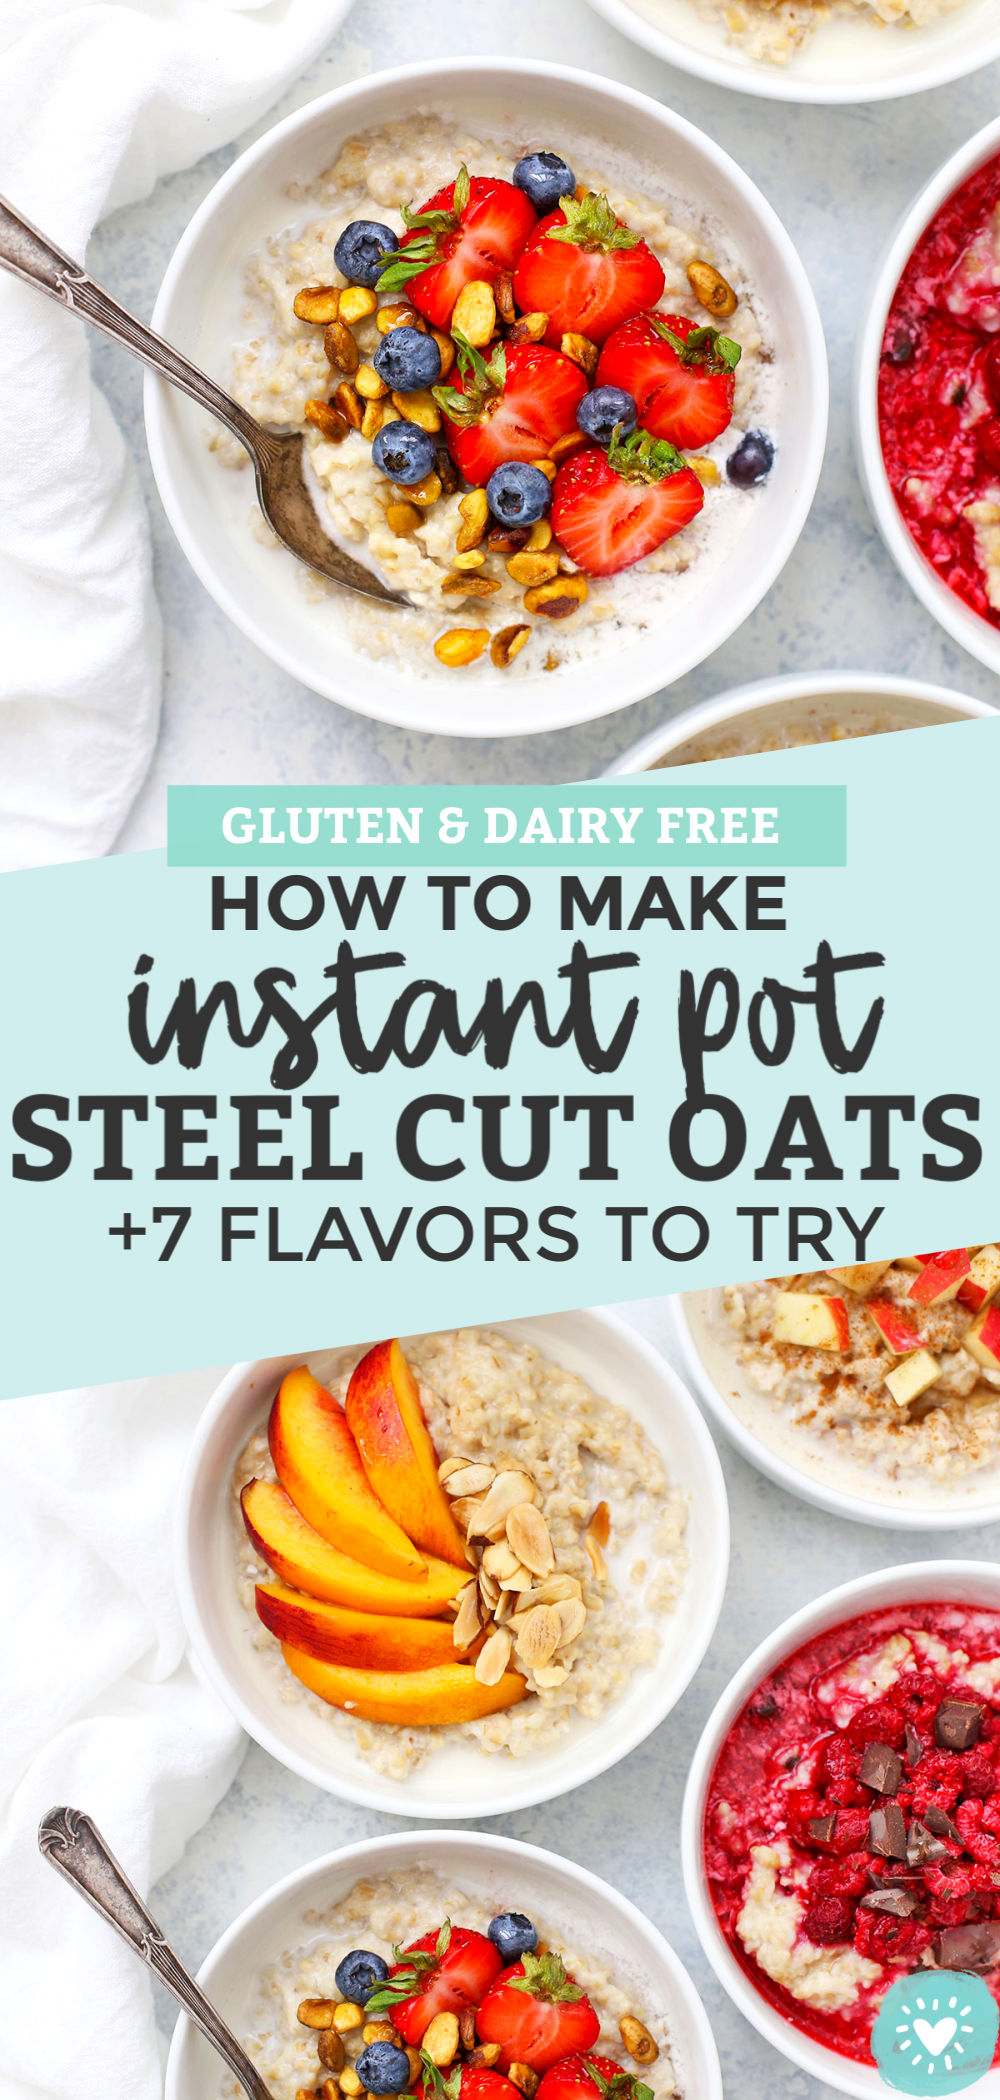 How to Make Instant Pot Steel Cut Oats + 7 Flavors to Try from One Lovely Life